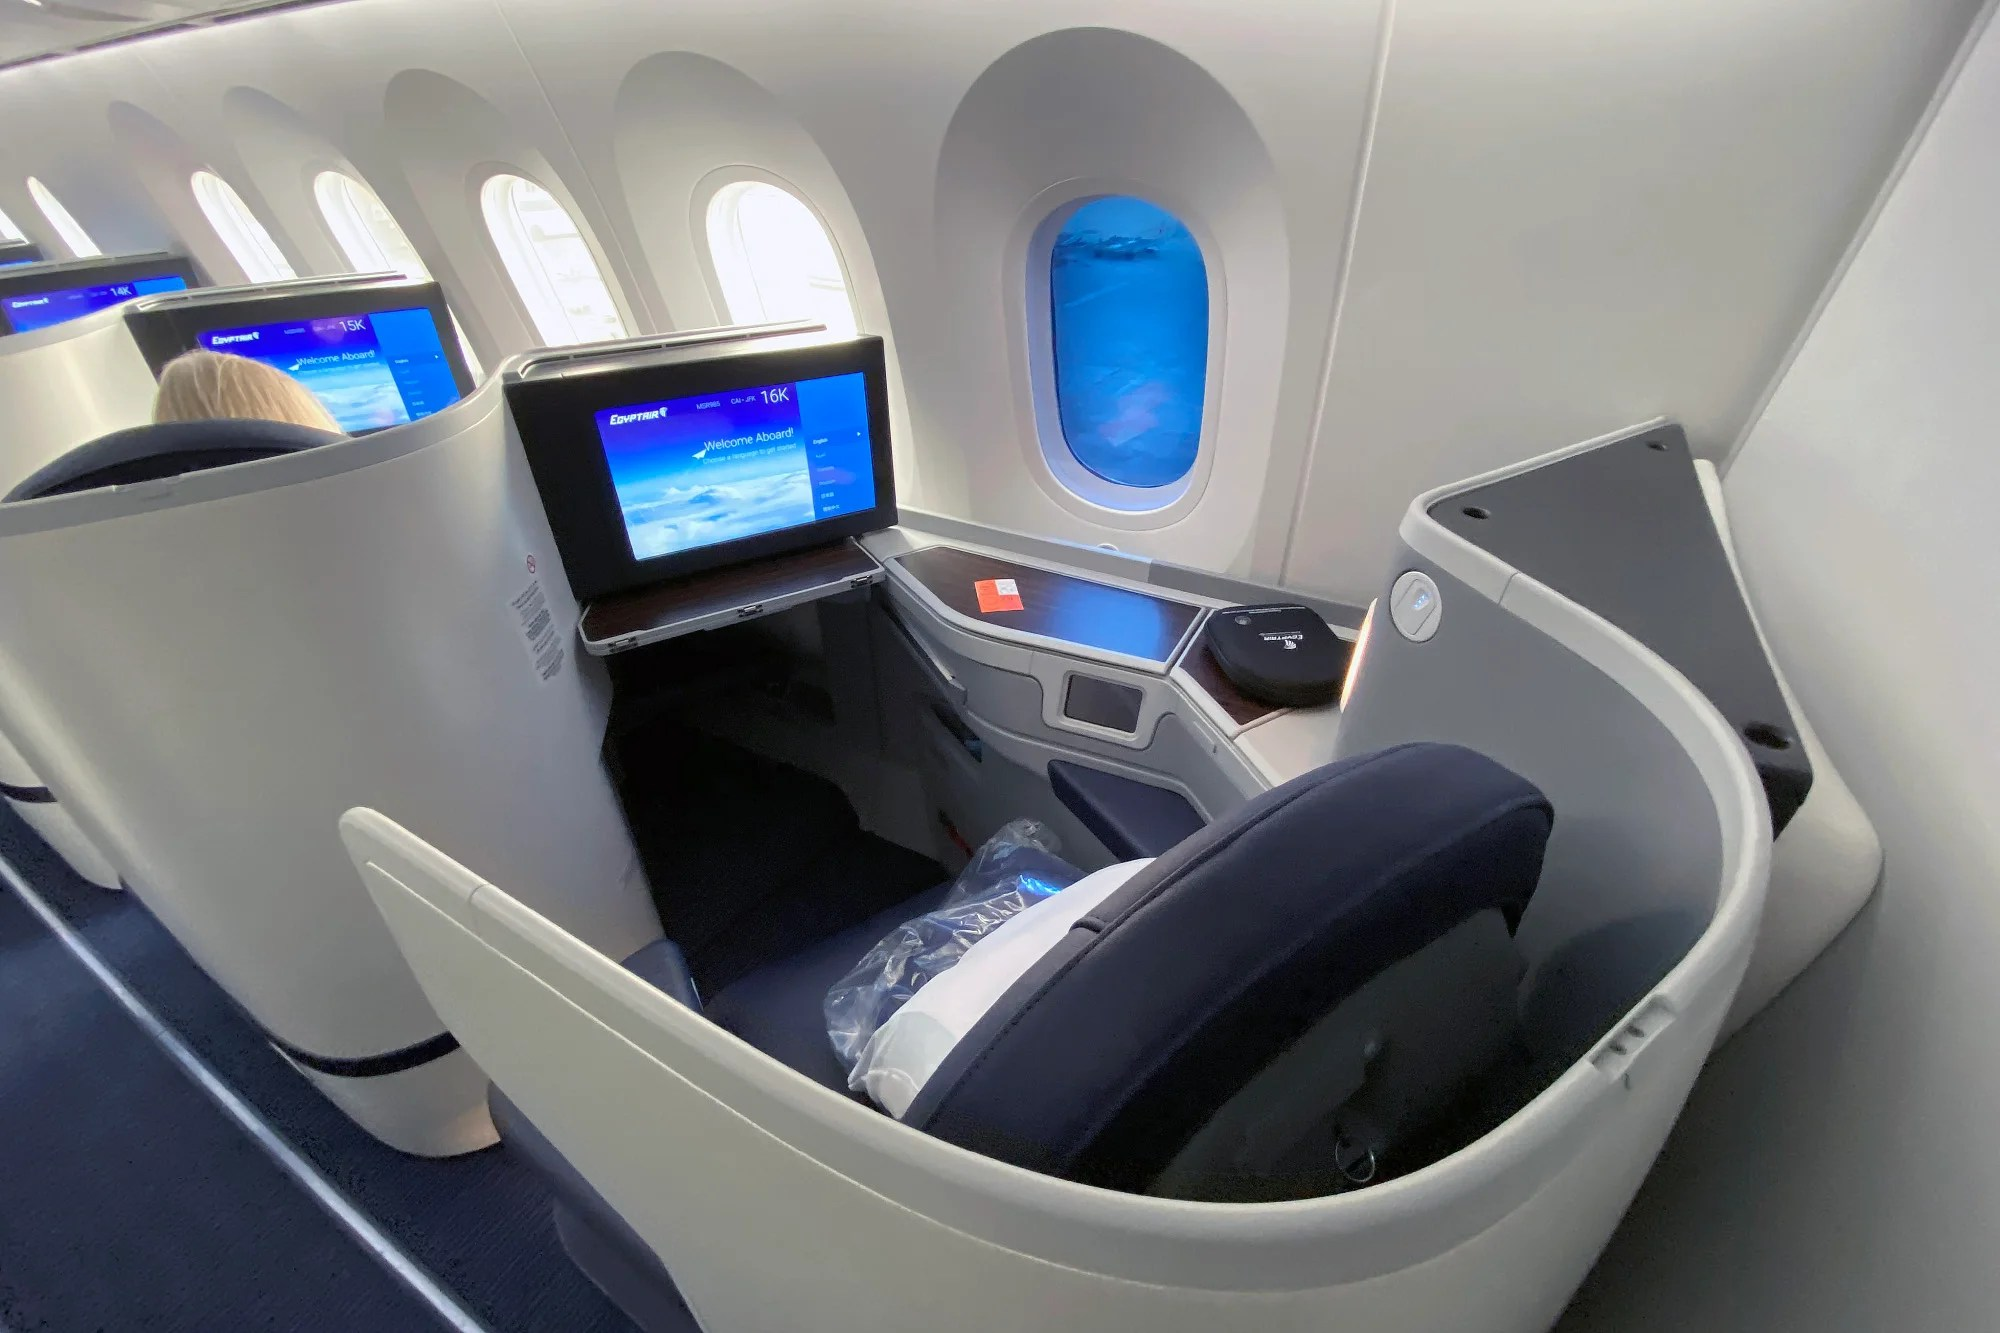 The potential is there: A review of EgyptAir's business class on the 787-9 from Cairo to New York